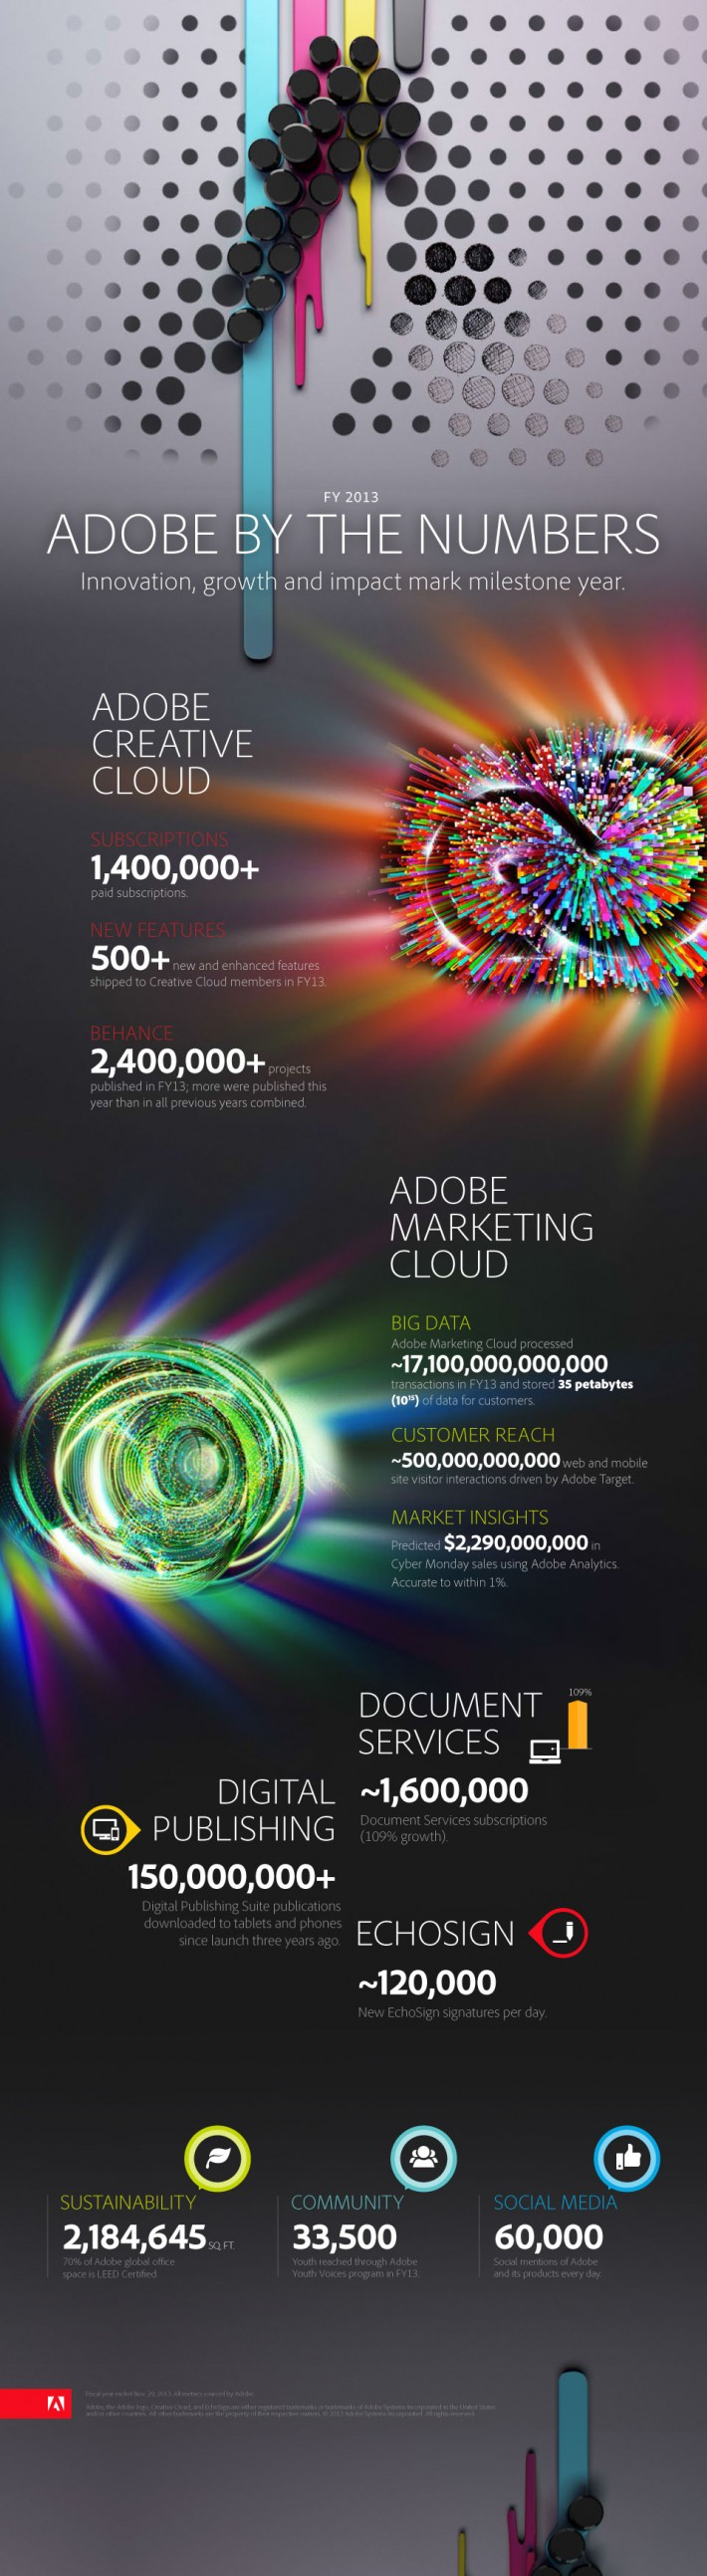 adobe numbers infographic fstoppers 2013